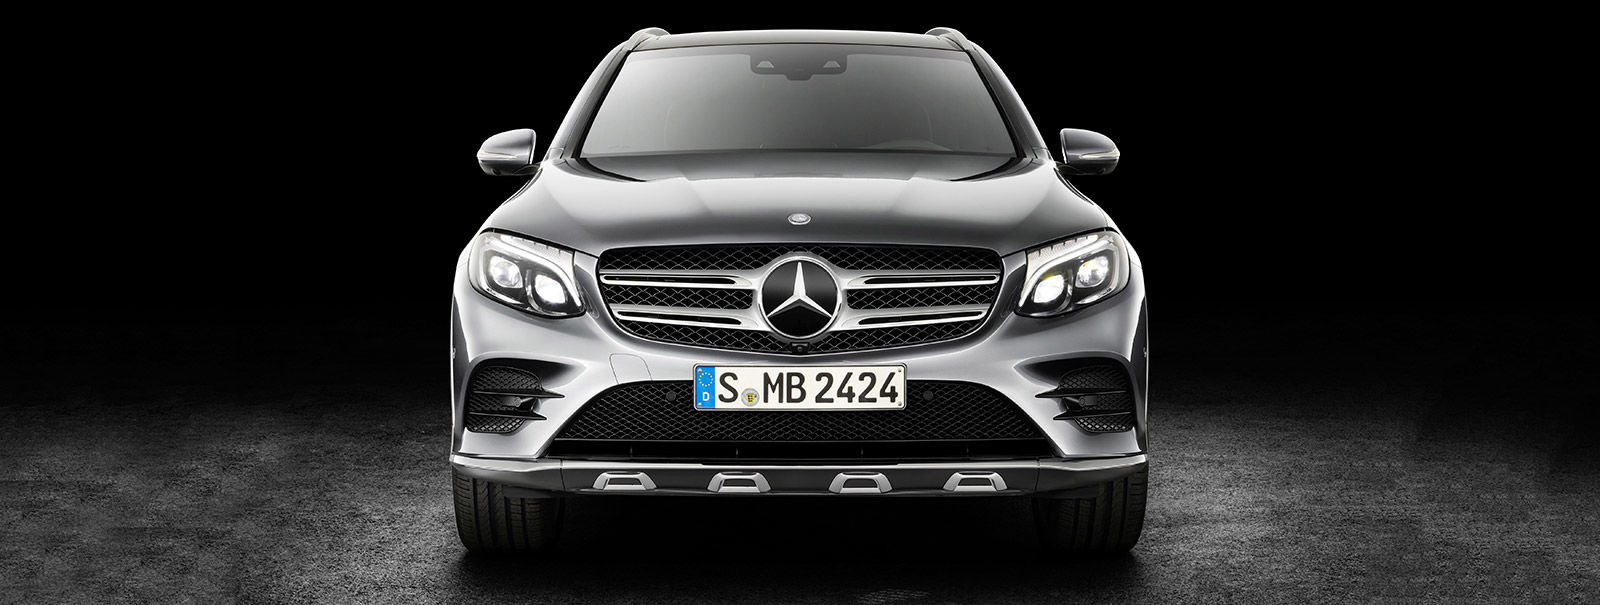 mercedes glc sizes and dimensions guide carwow. Black Bedroom Furniture Sets. Home Design Ideas